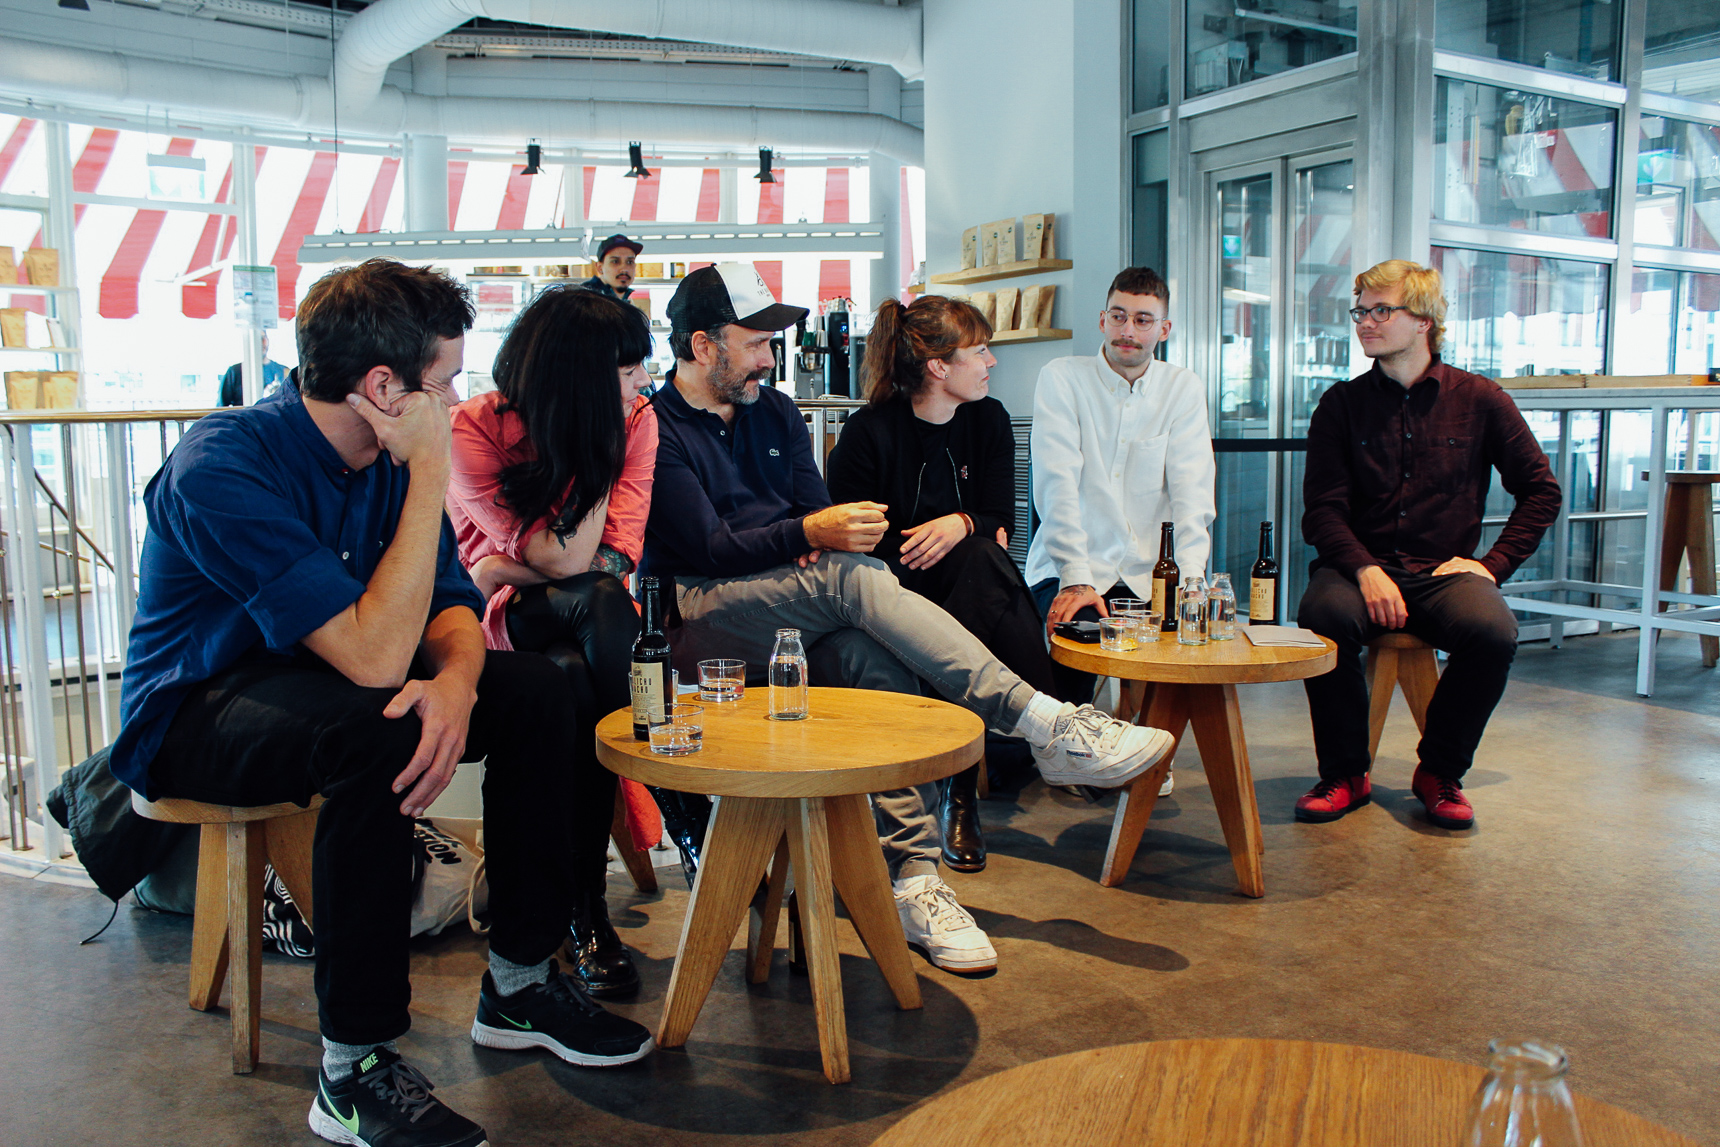 The panel considers an audience question before responding. - From left: Philipp Reichel, Nicole Battefeld, Ralf Rueller, Nora Smahelova, Wojtek Bialczak, and Richard Stiller. Photo: Susie Kealy.